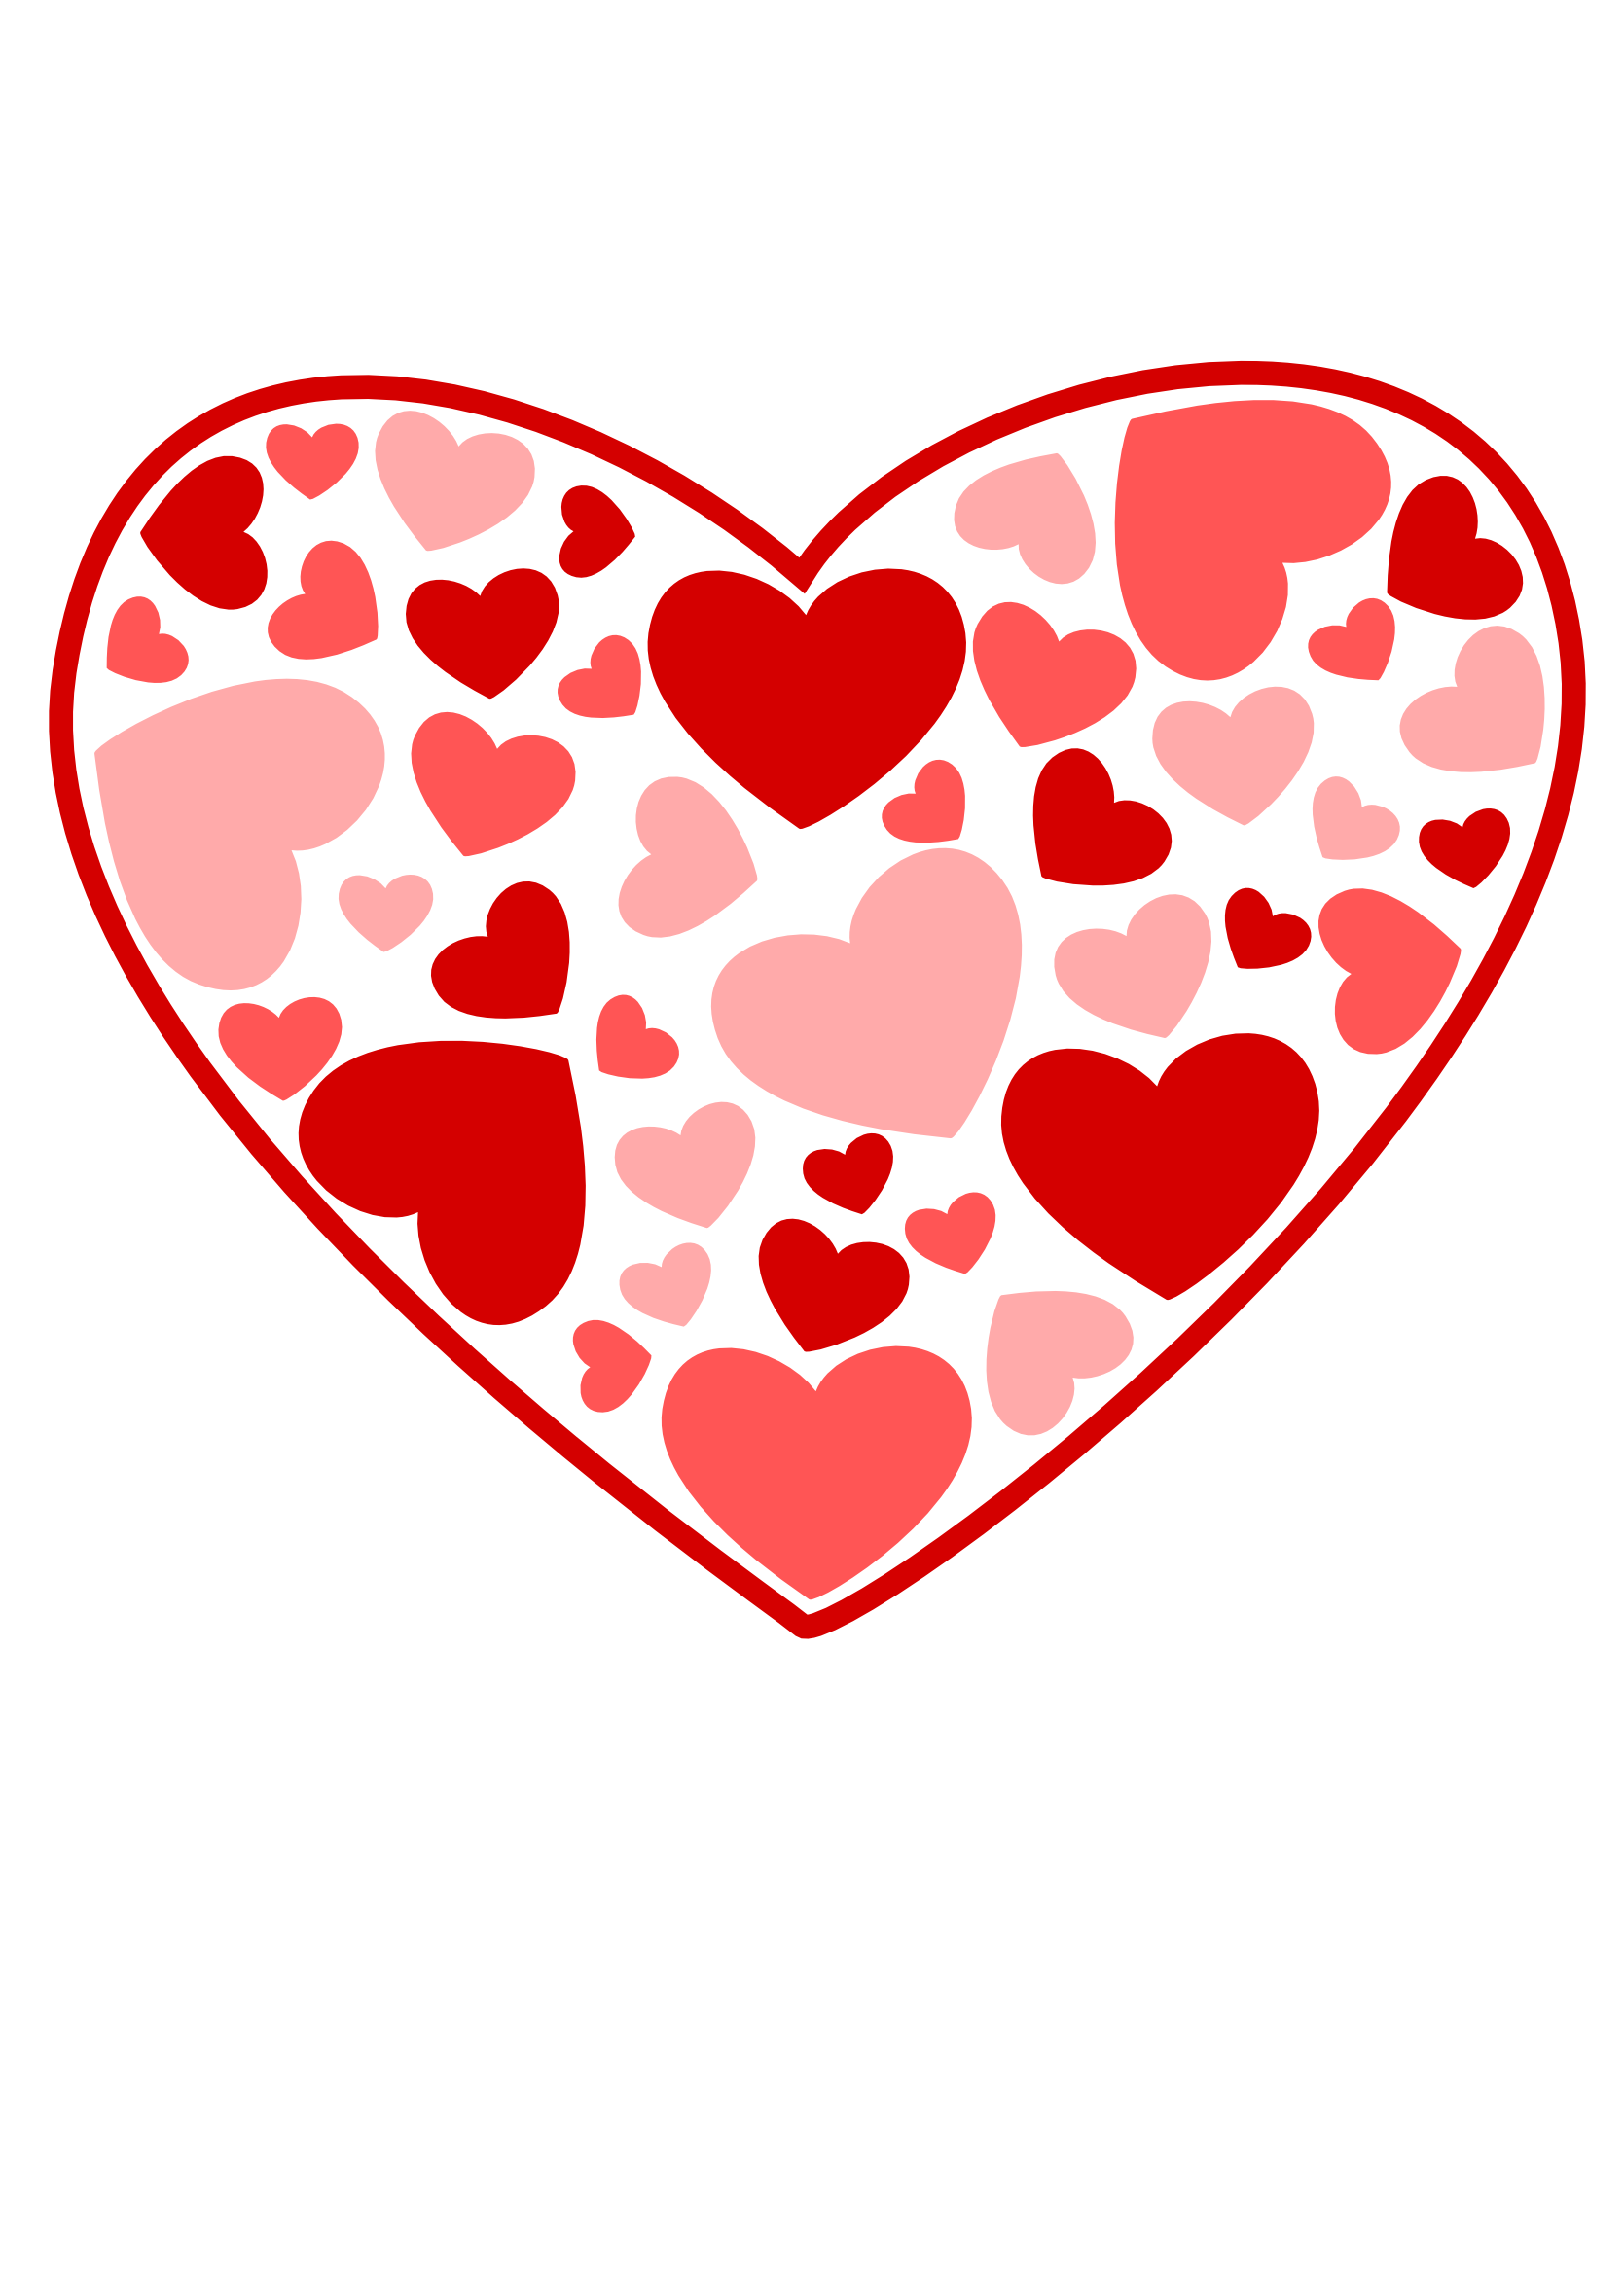 Valentines images yahoo image. Honeycomb clipart heart